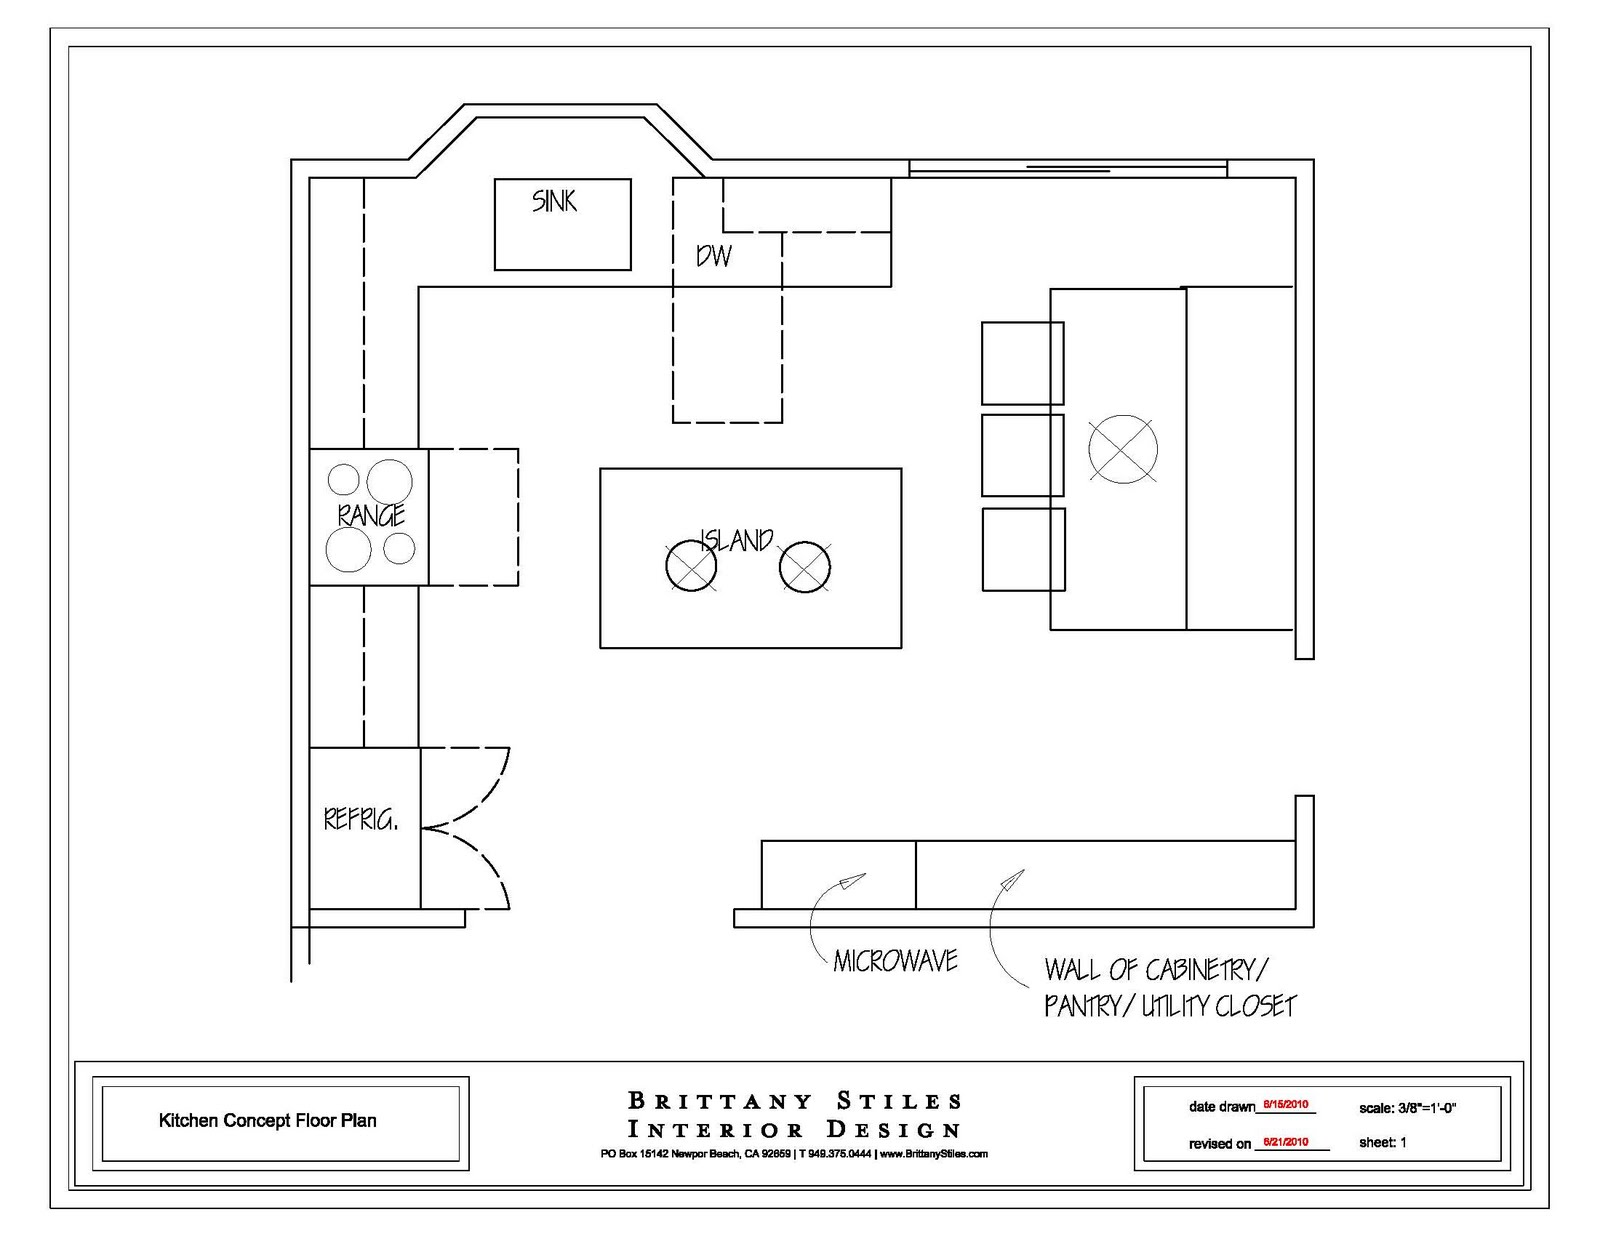 How To Design A Kitchen Layout Weekly Hotel Rates With Kitchens Brittany Stiles July 2010